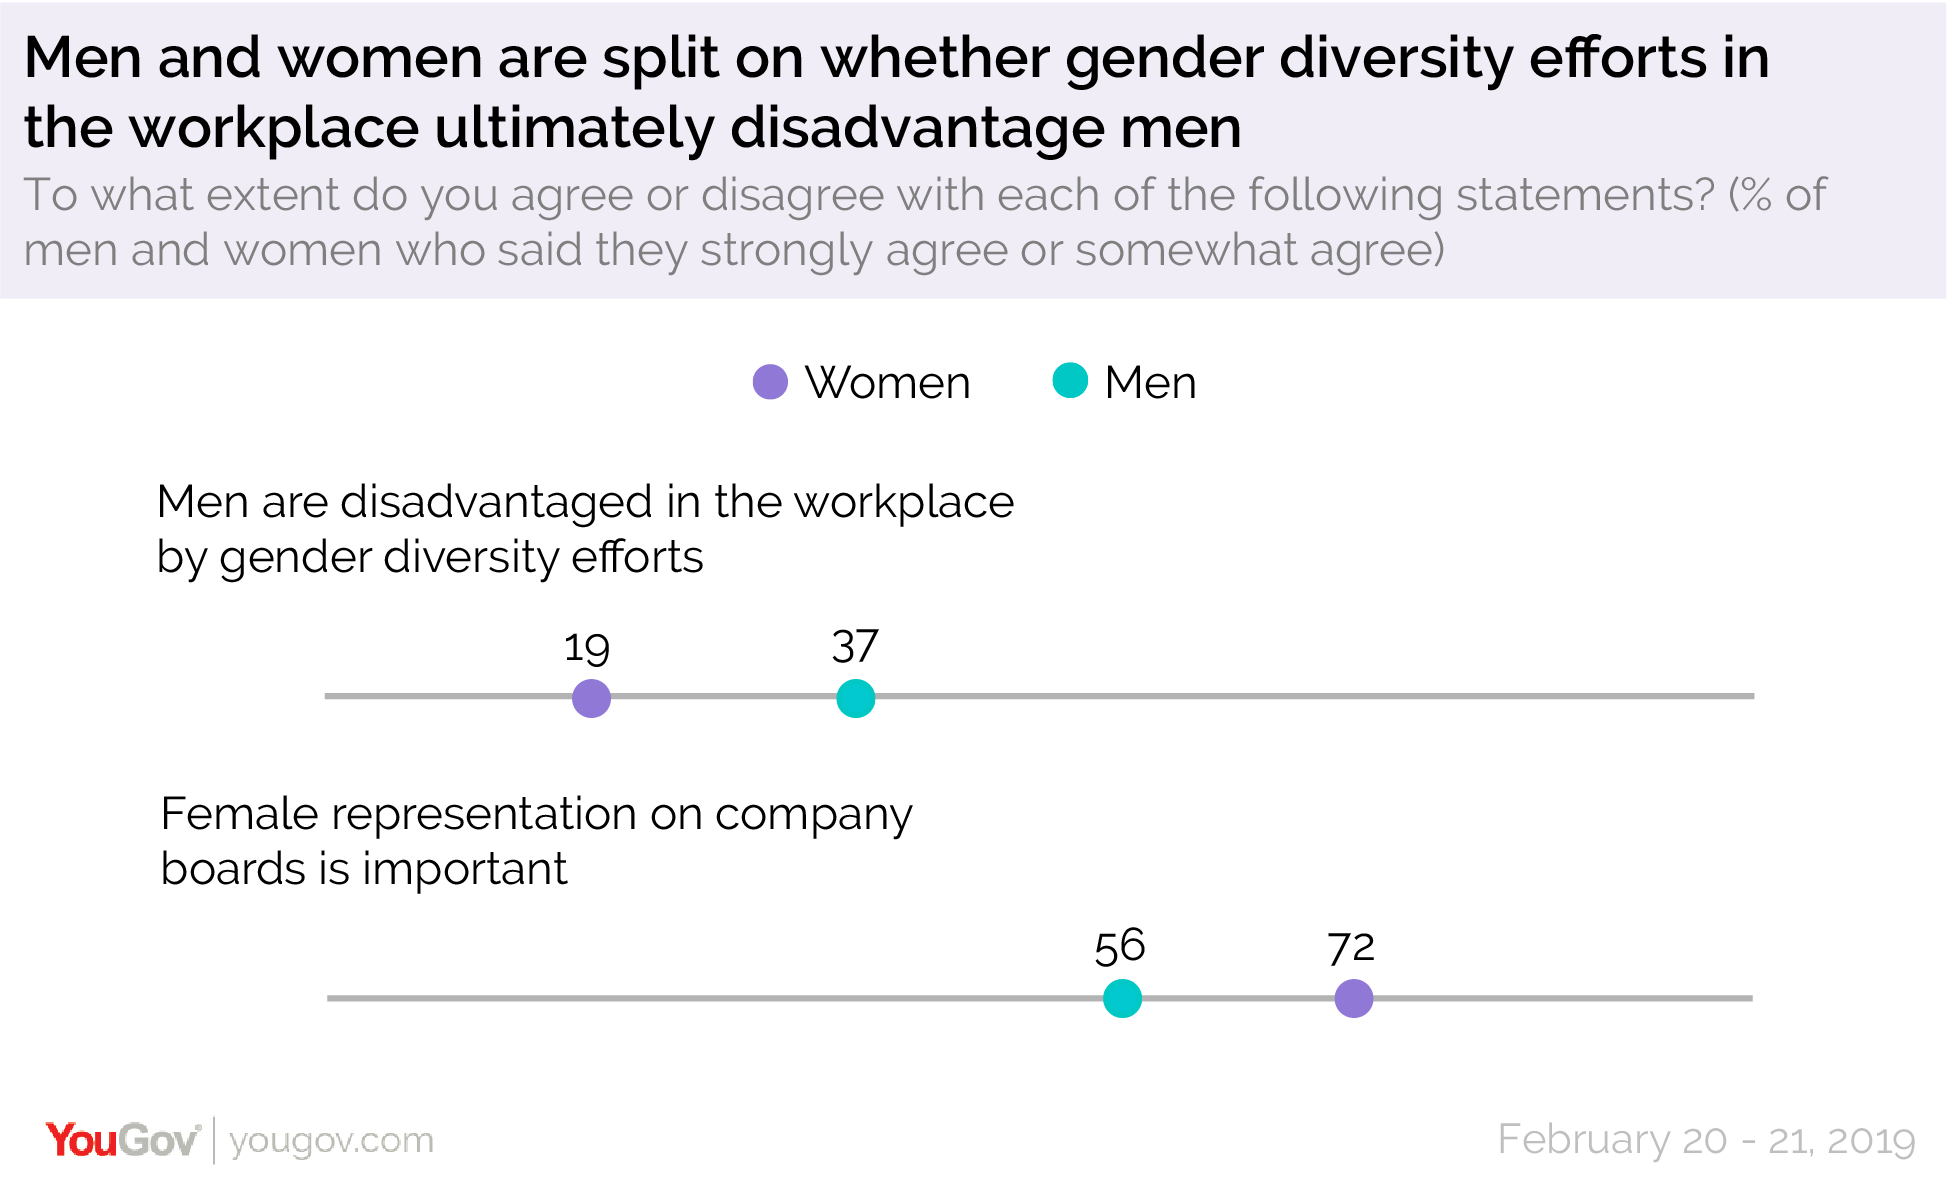 Men and women are split on whether gender diversity efforts in the workplace ultimately disadvantage men